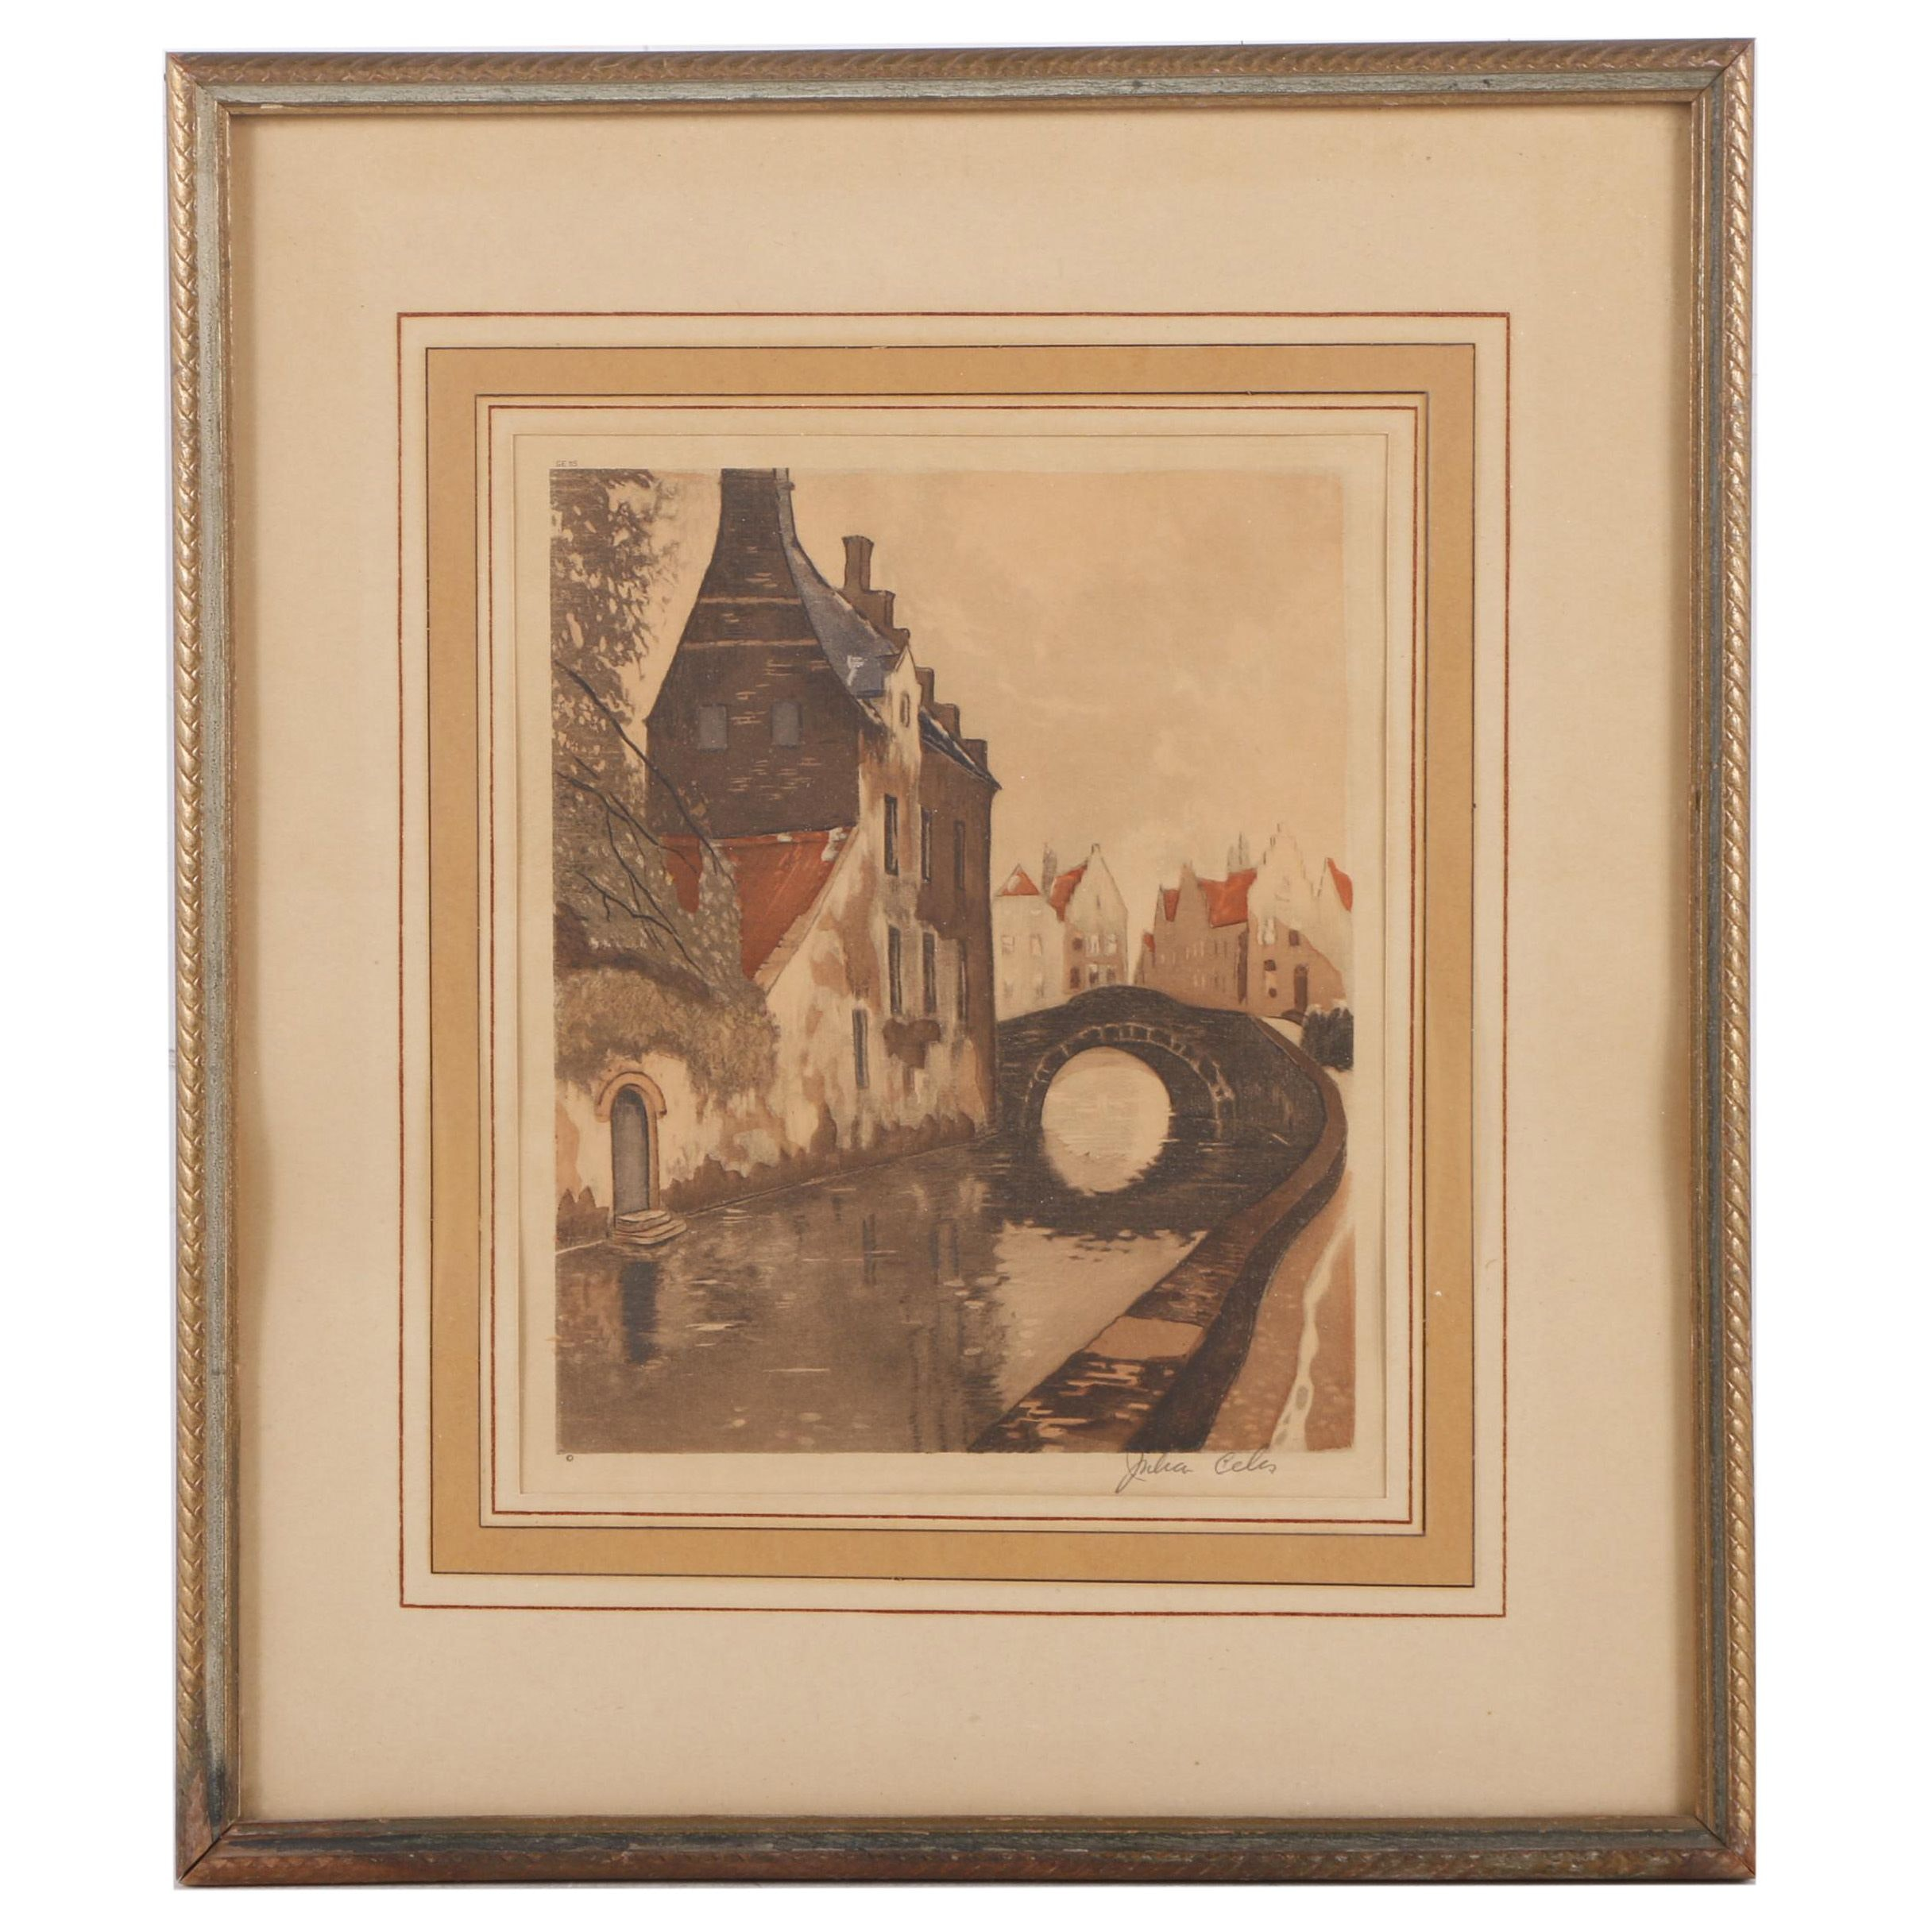 Hand Colored Mixed Media Print of a European Canal Scene